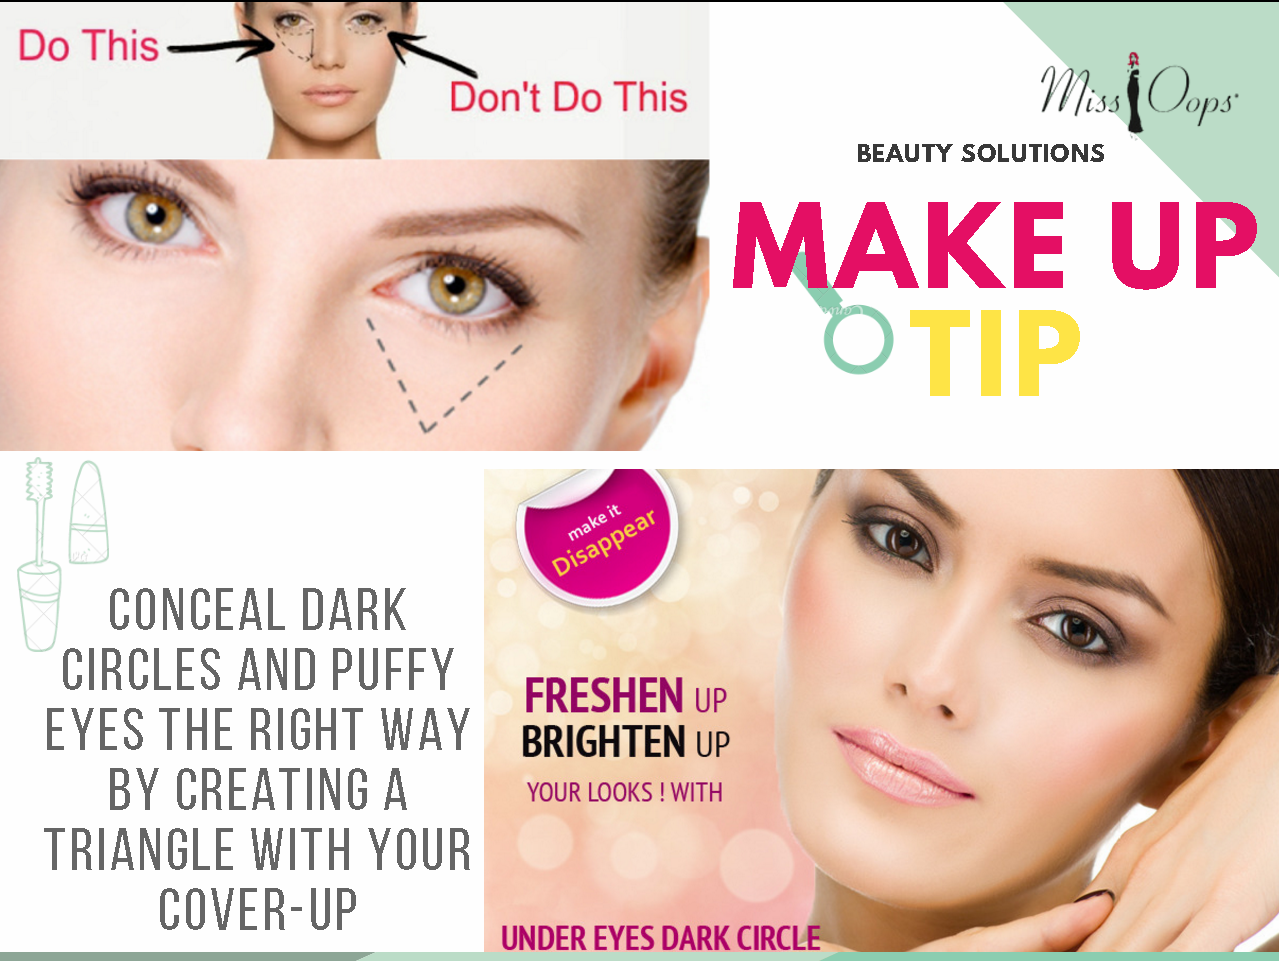 MakeupTip Conceal dark circles and puffy eyes the right